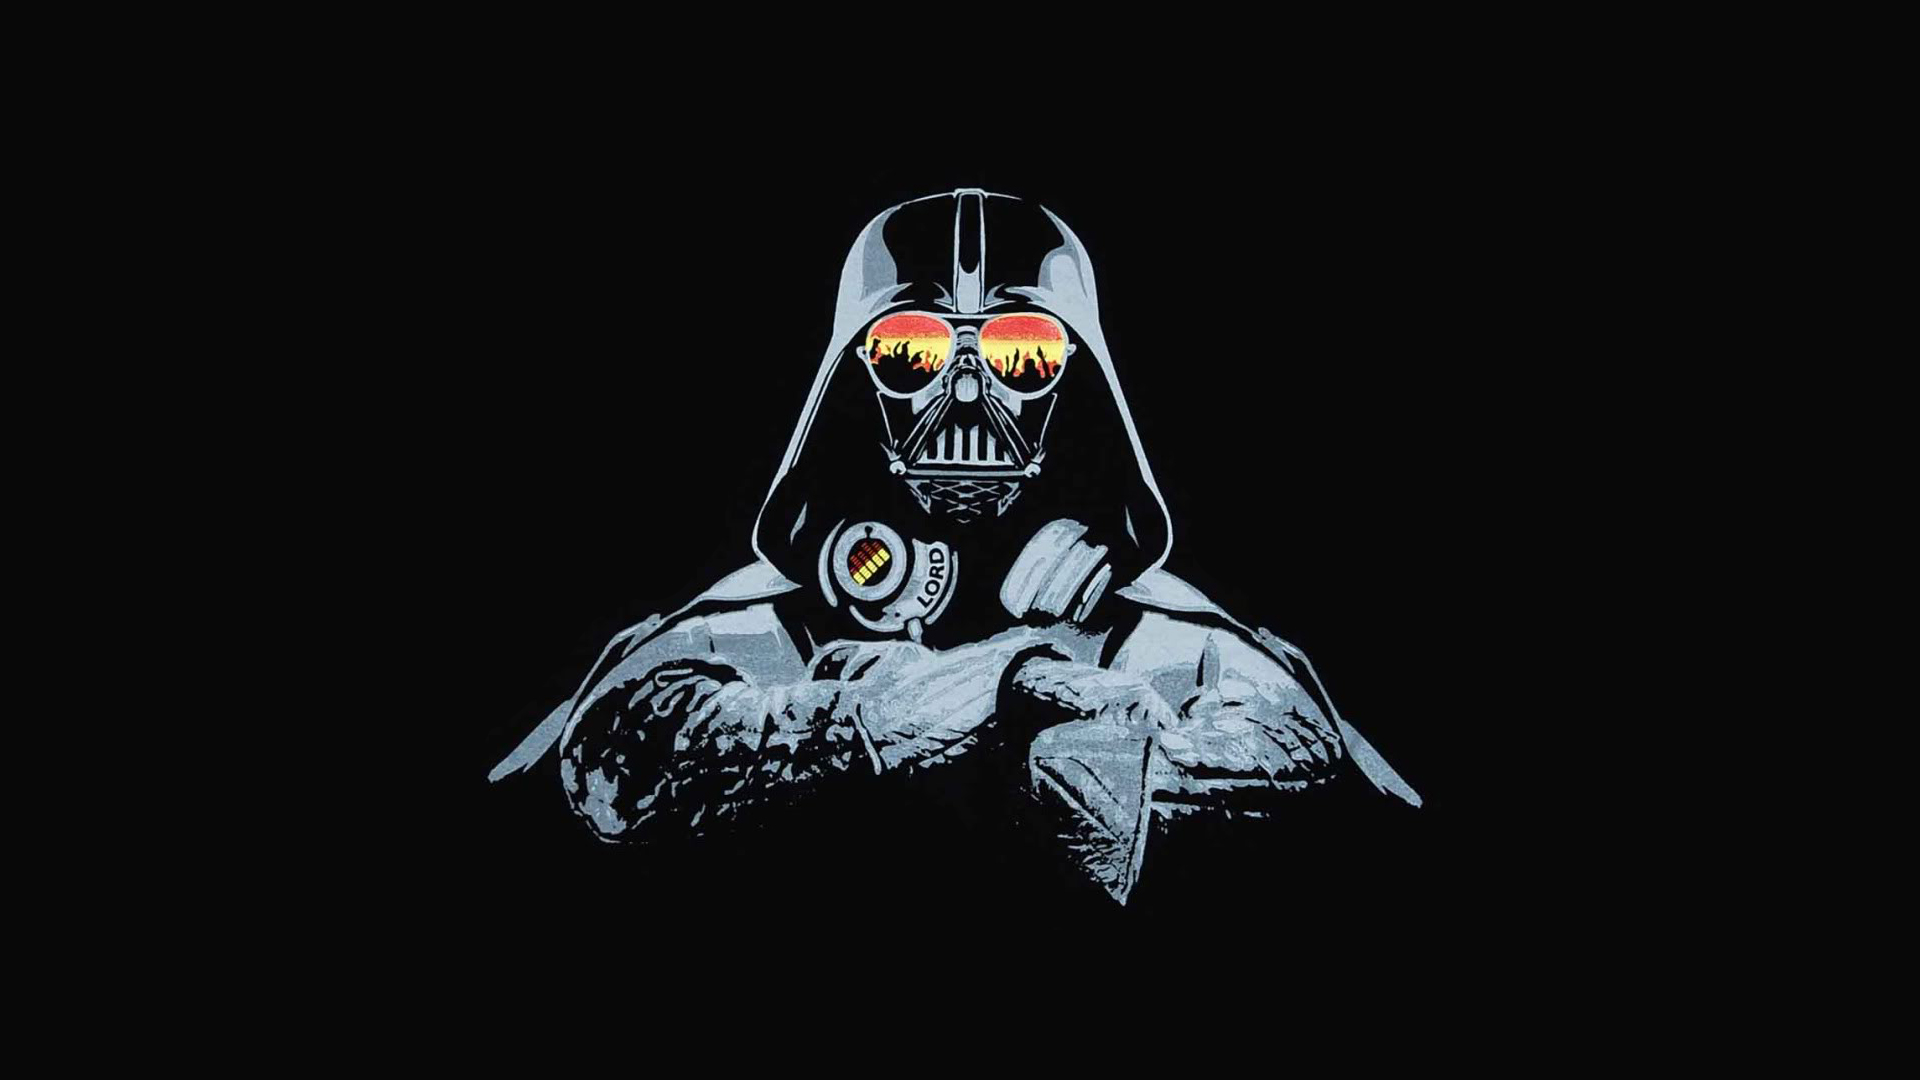 DJ Darth Vader Wallpaper FunDJStuffcom